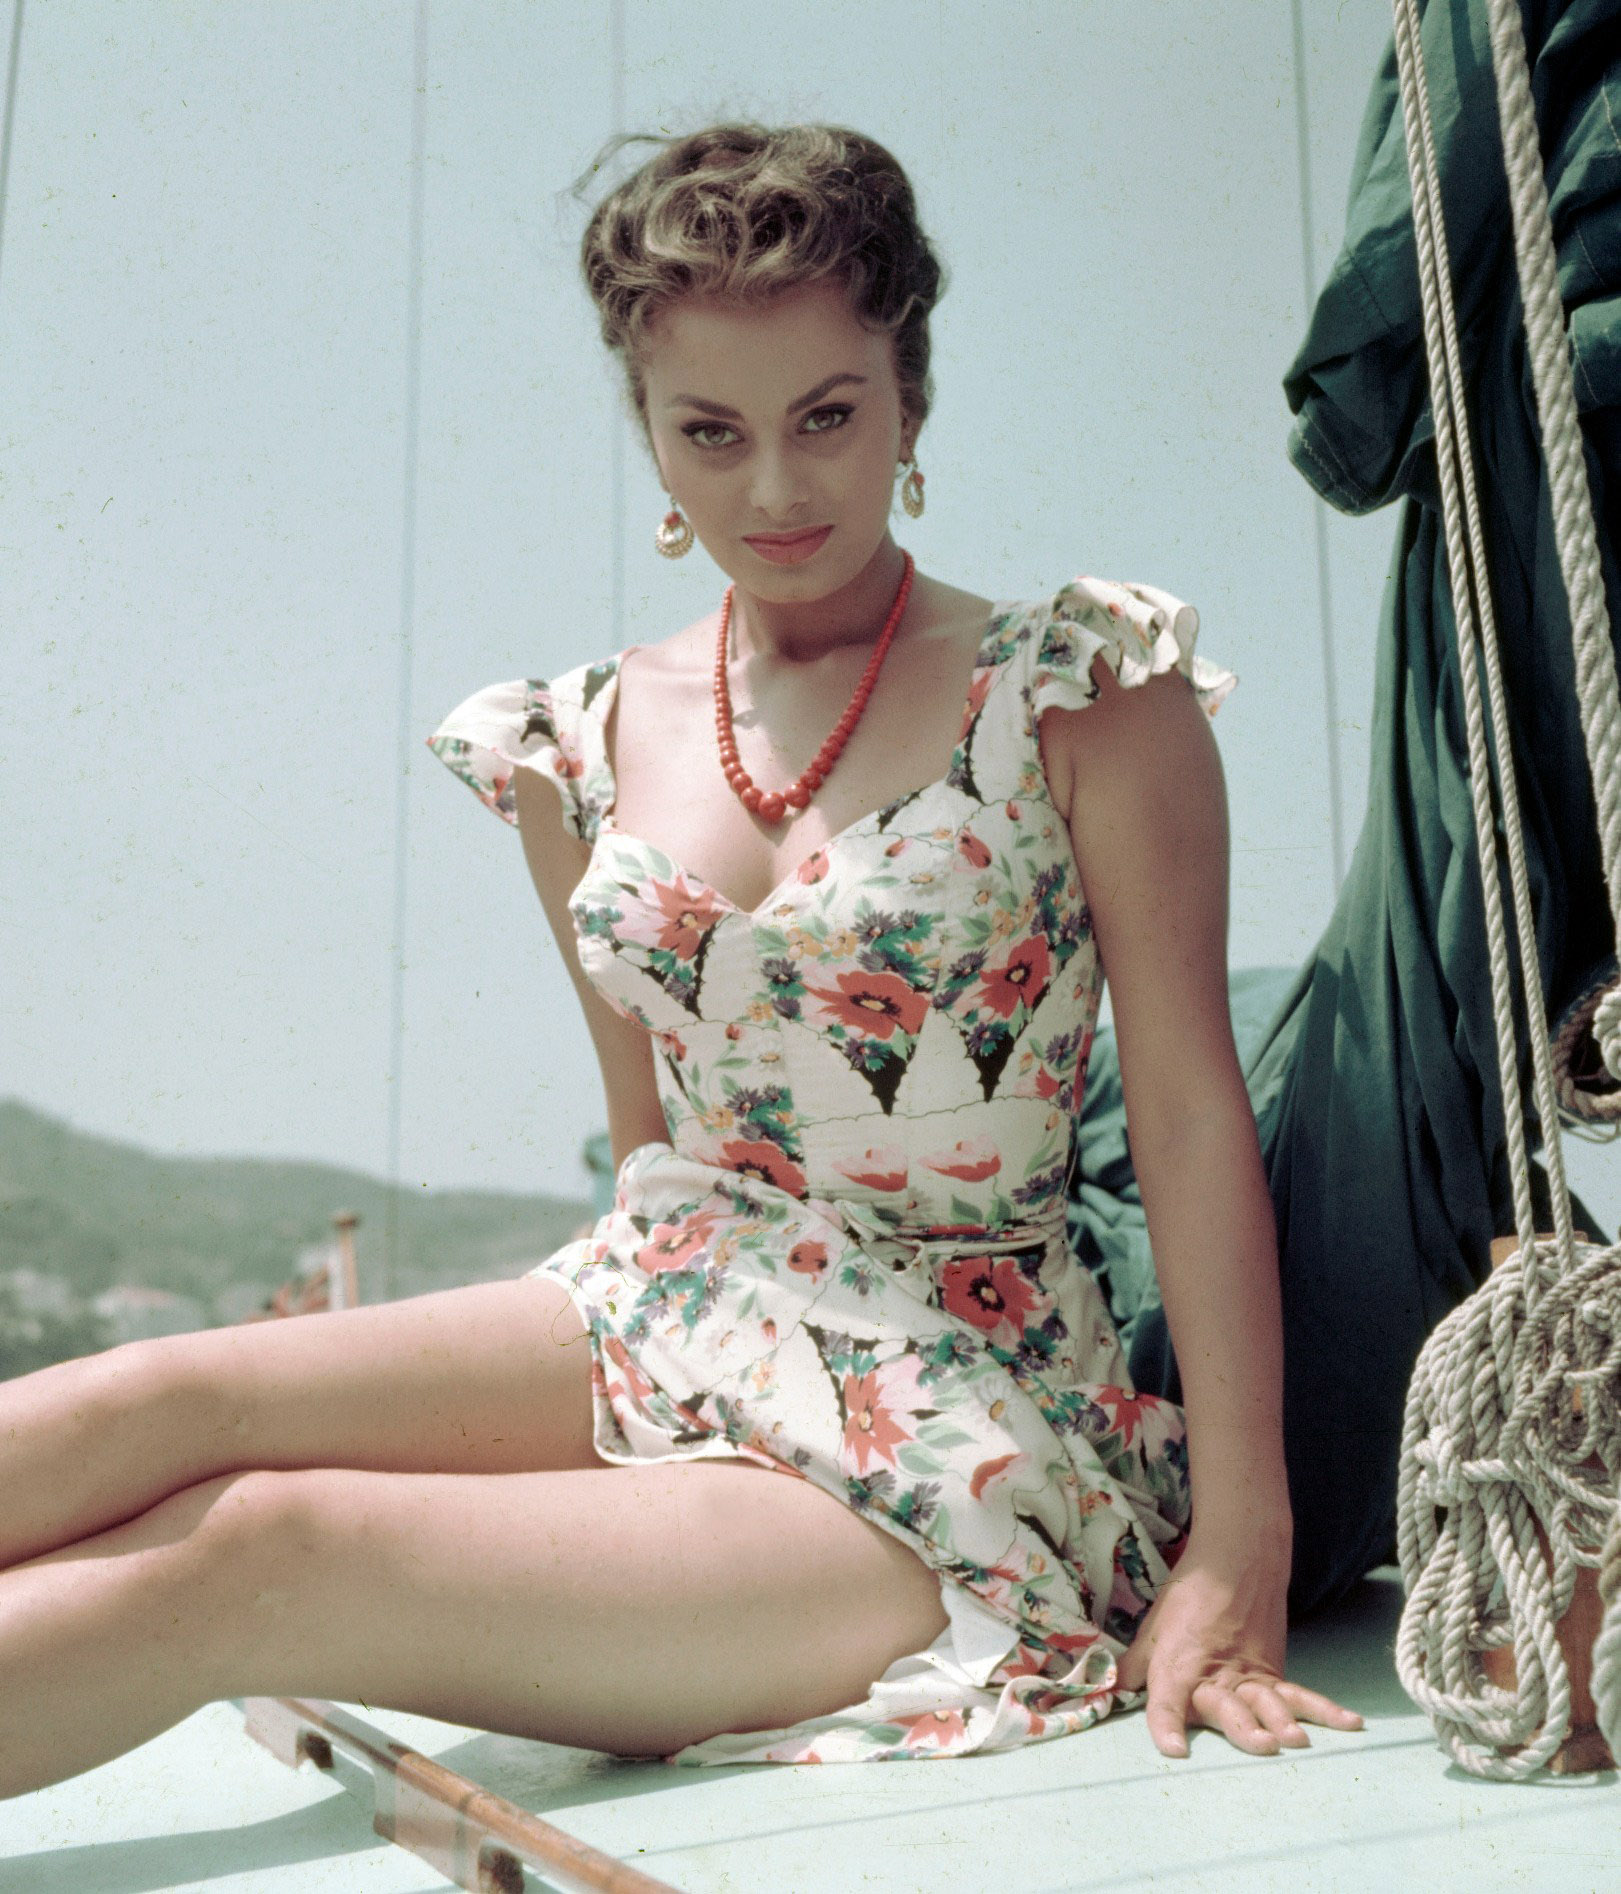 http://verdoux.files.wordpress.com/2008/02/sophia-loren.jpg